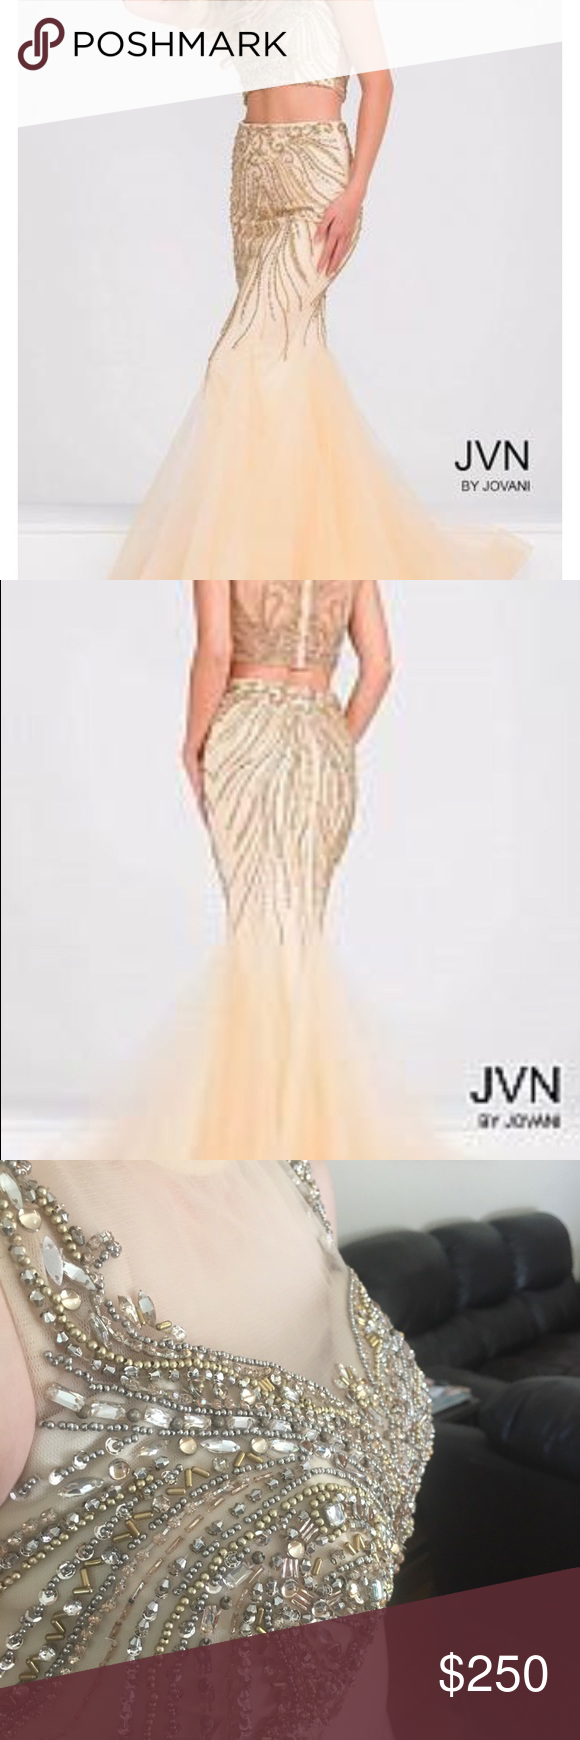 Jvn by jovani nudegold prom dress sadly re poshing daughter didnut